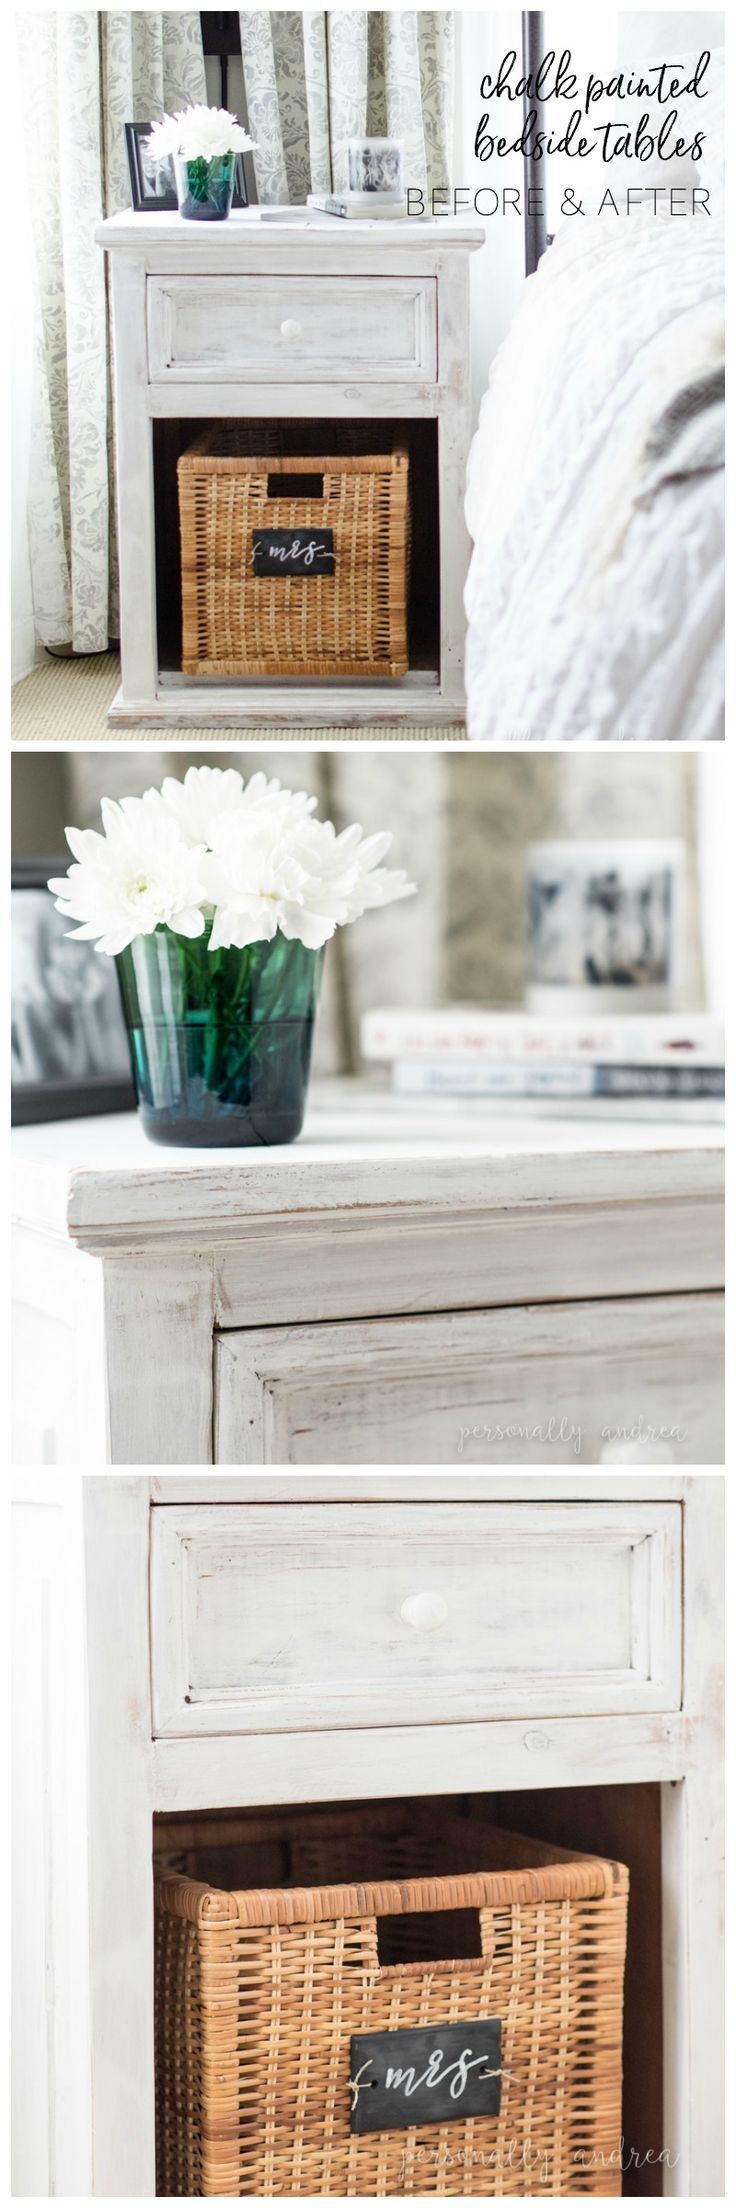 How to whitewash dated pine bedside tables with white chalk paint for a fresh farmhouse look. Includes before and after photos | http://personallyandrea.com